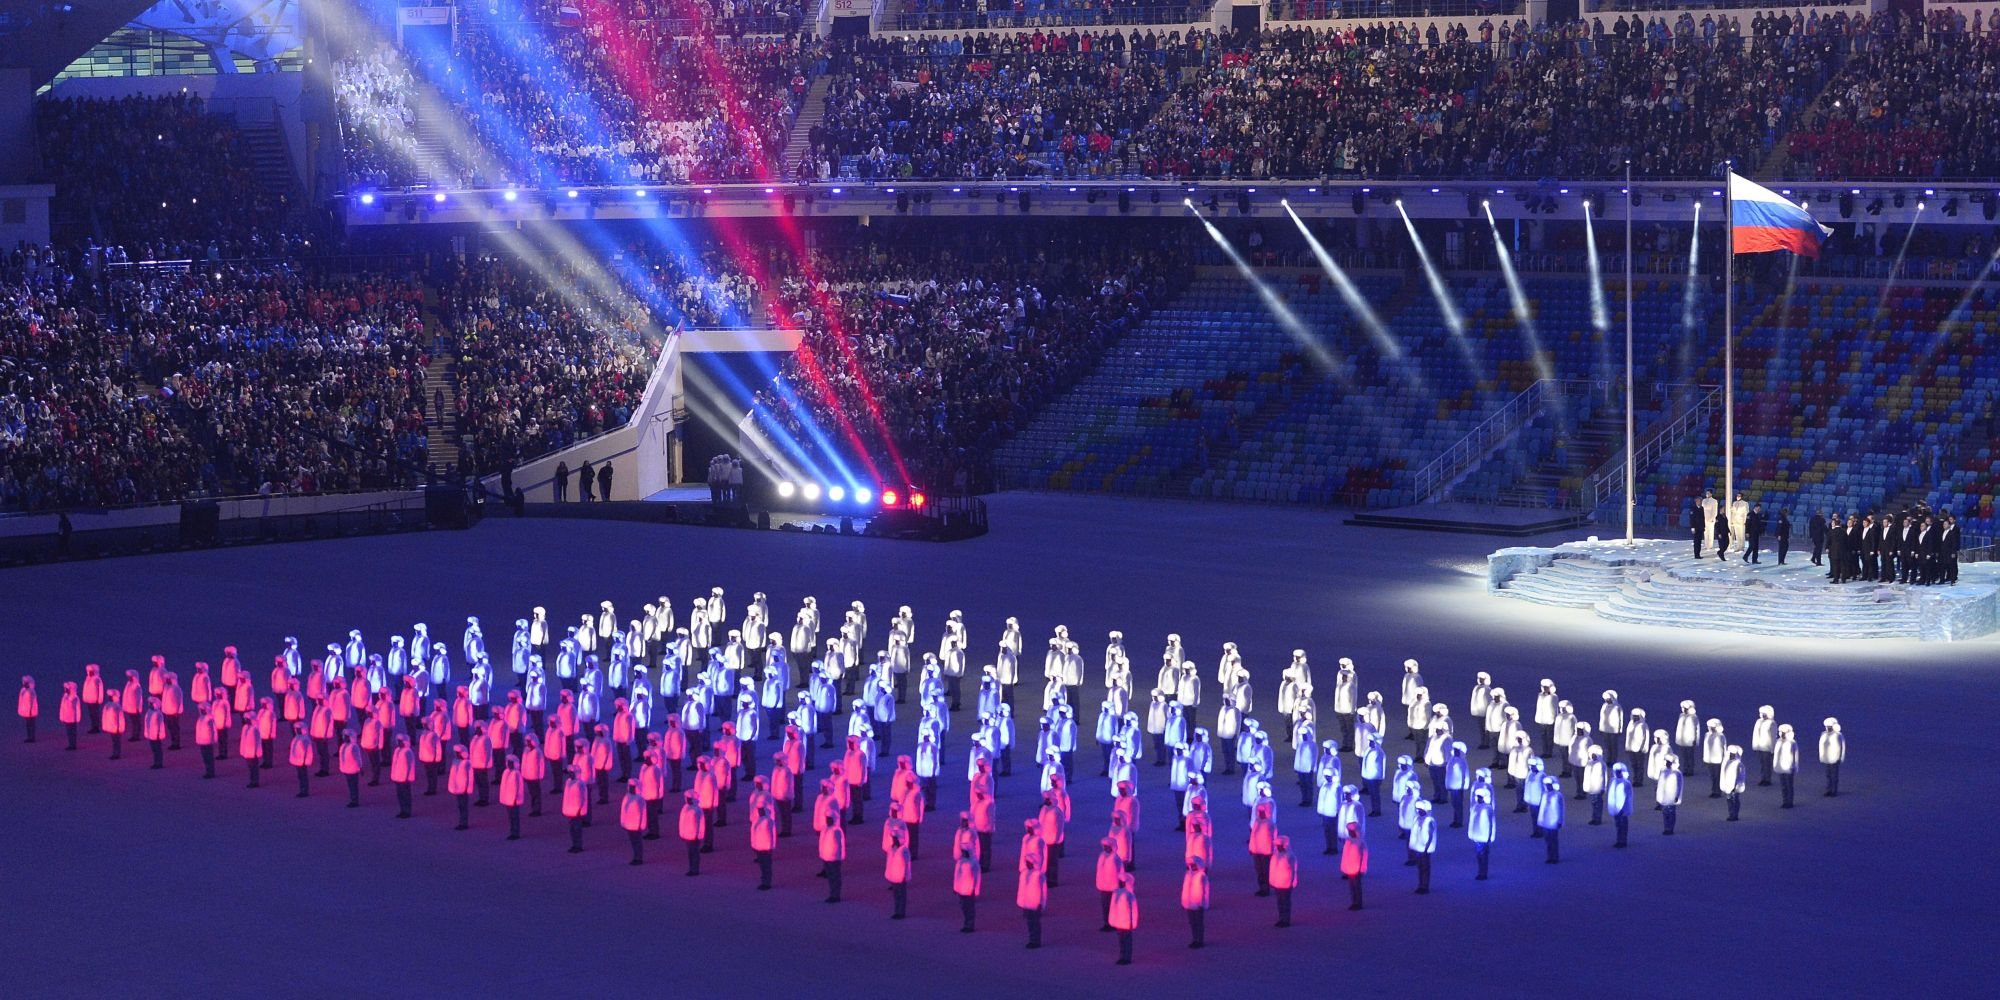 Sochi Winter Olympics Opening Ceremony In Pictures